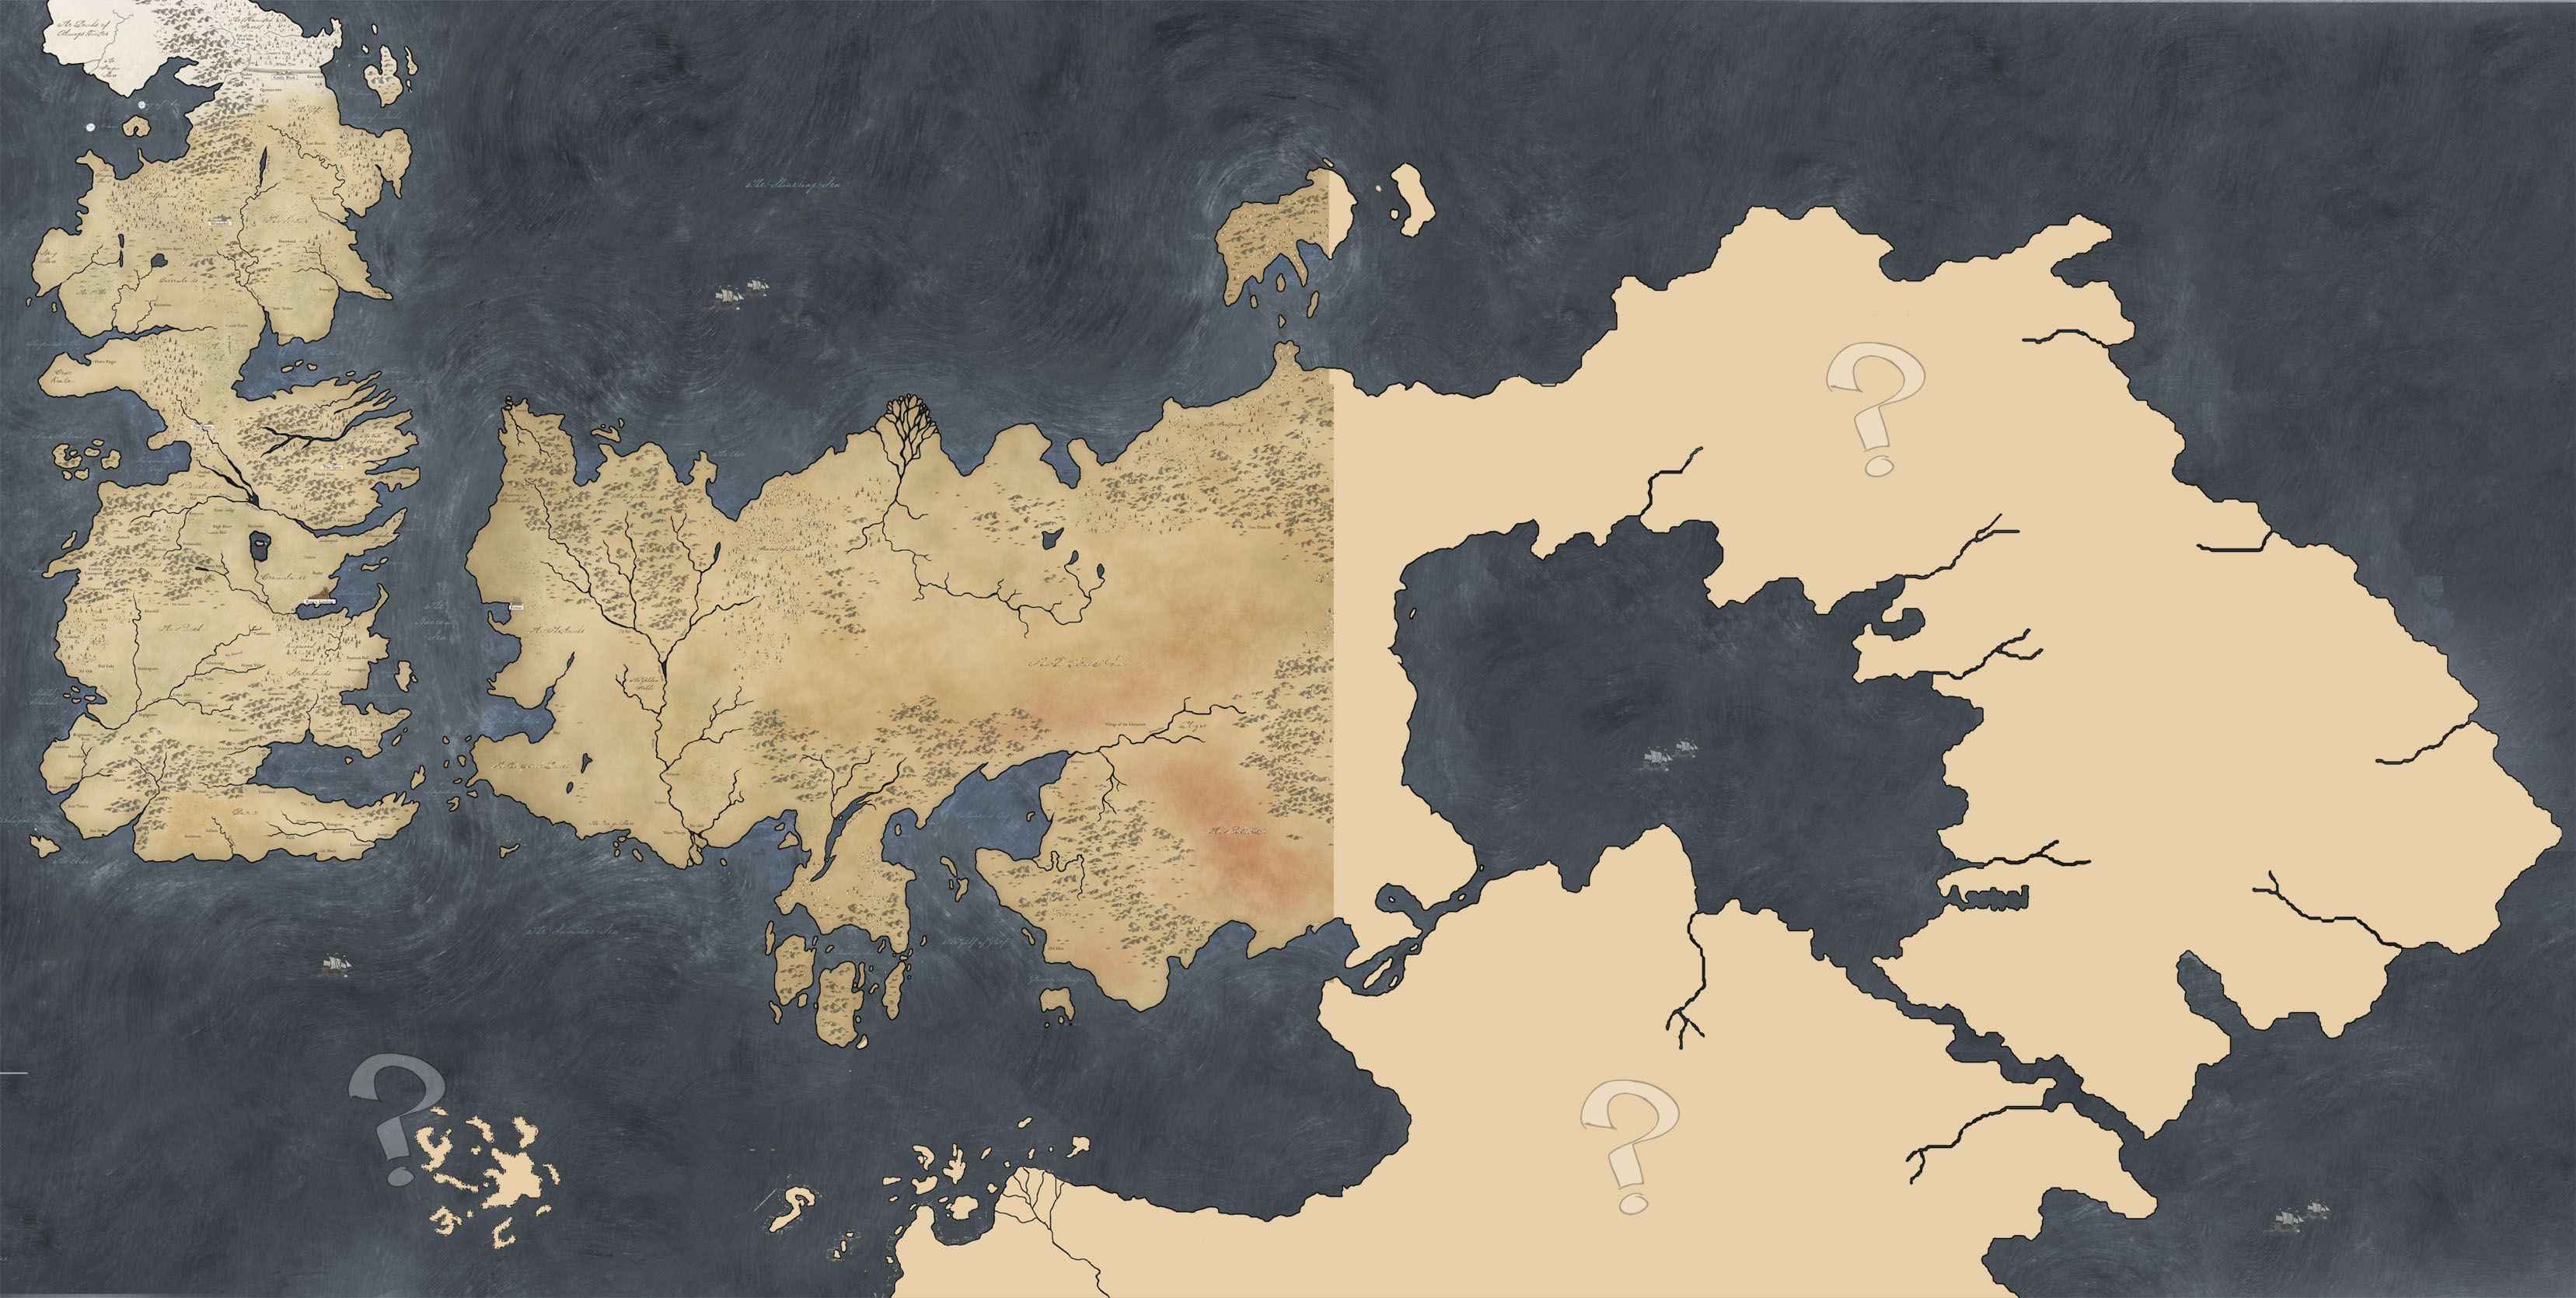 Westeros Map Wallpaper - WallpaperSafari on full map of gor, full map of alagaesia, full map of north america, full map of narnia, full map of minnesota cities, full map of tamriel, full map of new york, full map of minecraft, full map of ancient greece, full map of essos, full game of thrones character map, full map of namibia, full map of the usa, full map of kenya, full map of earth, full map of arlington tx, full map of caribbean, full map of mesopotamia, full map of united states, full map of world,